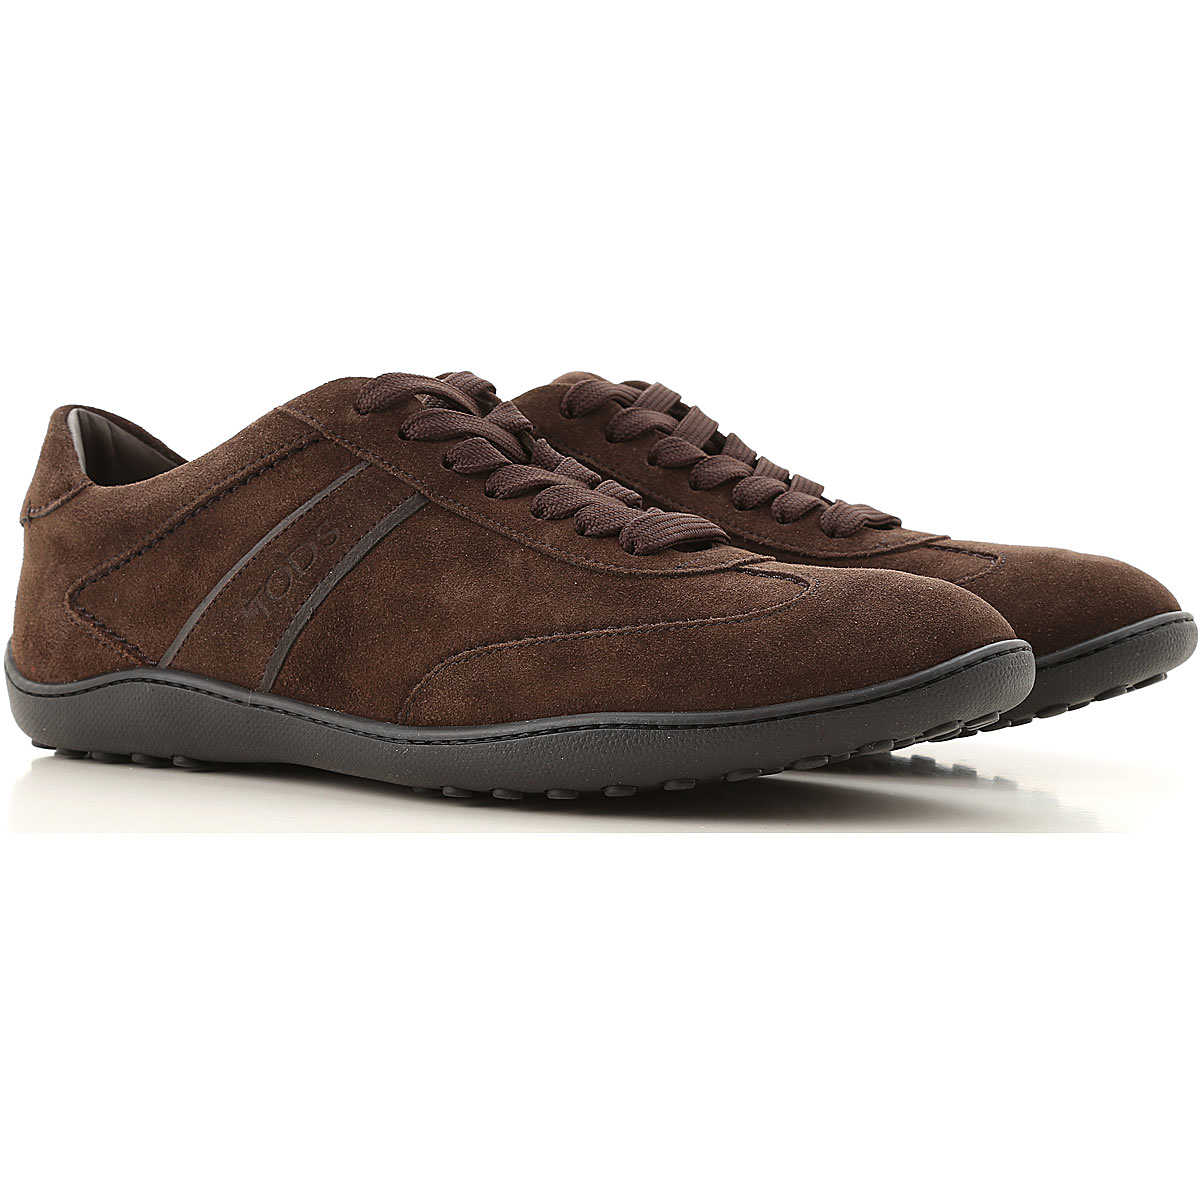 Tods Sneakers for Men On Sale in Outlet Dark Brown - GOOFASH